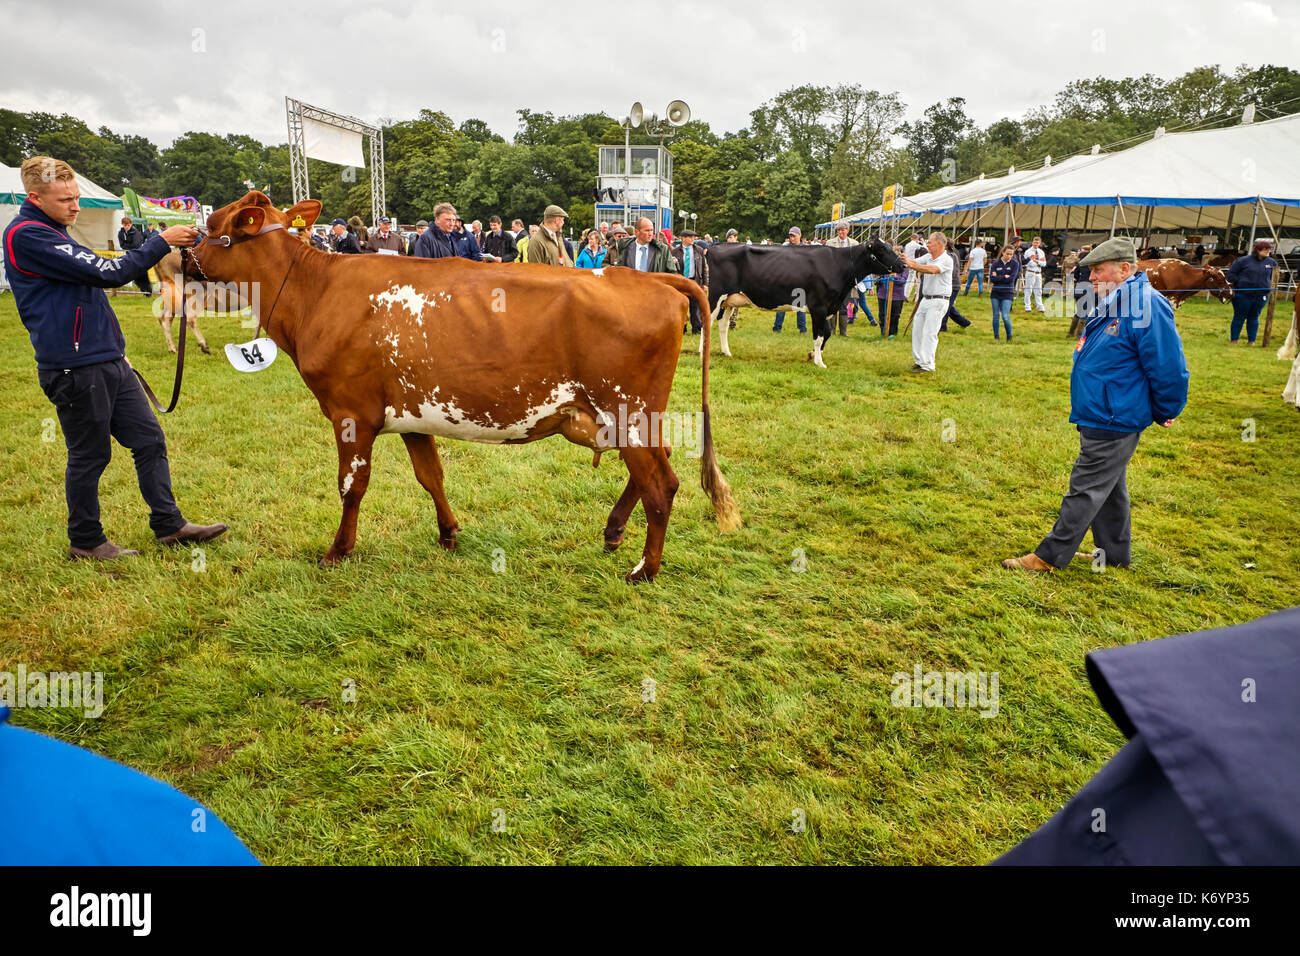 Cow being judged at the Nantwich show - Stock Image